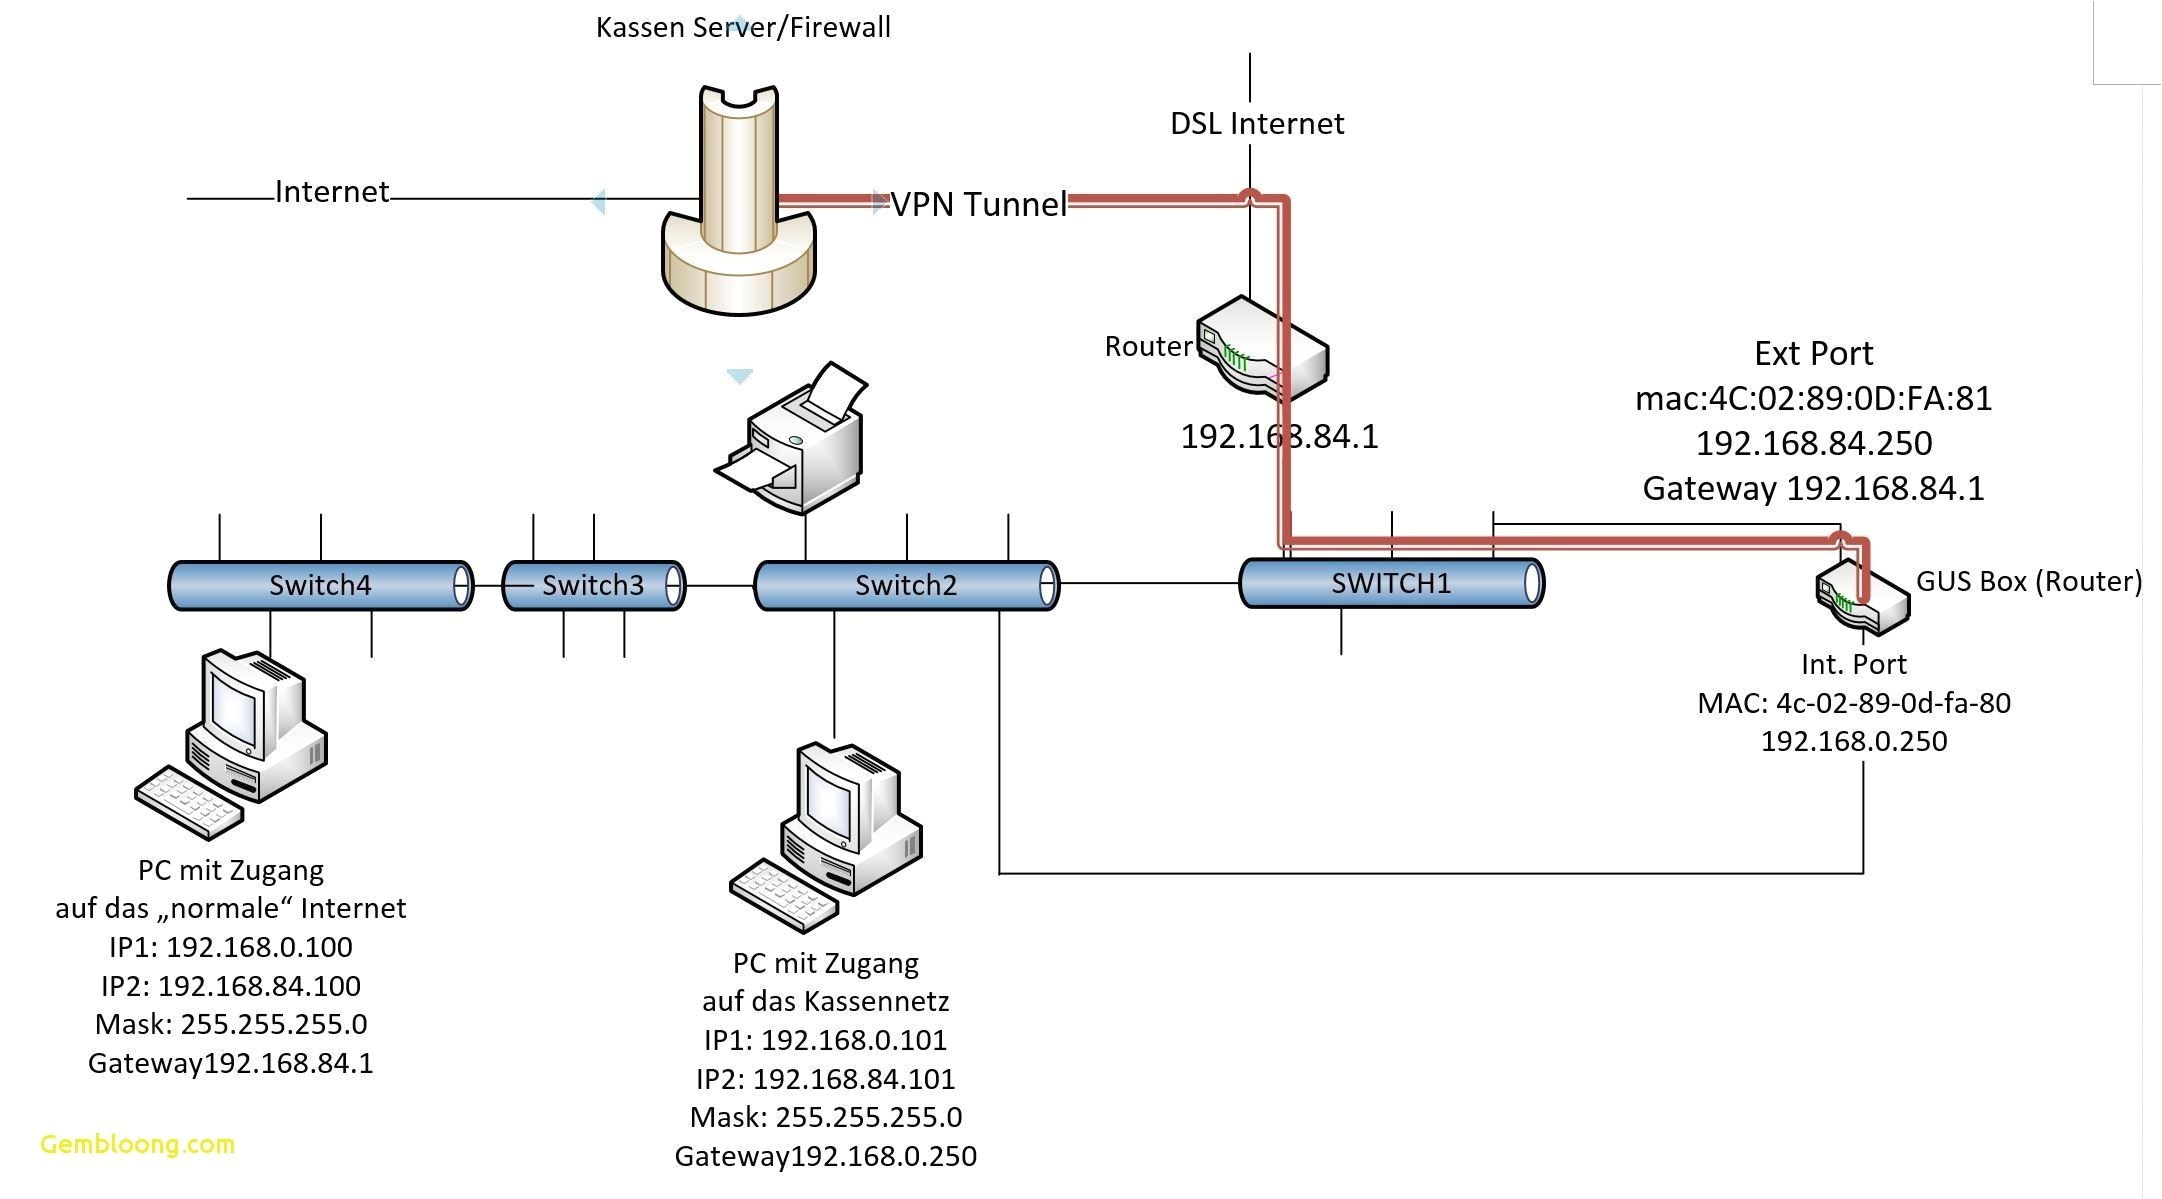 Network Wiring Diagram Home Internet Wiring Design Wiring Diagrams for